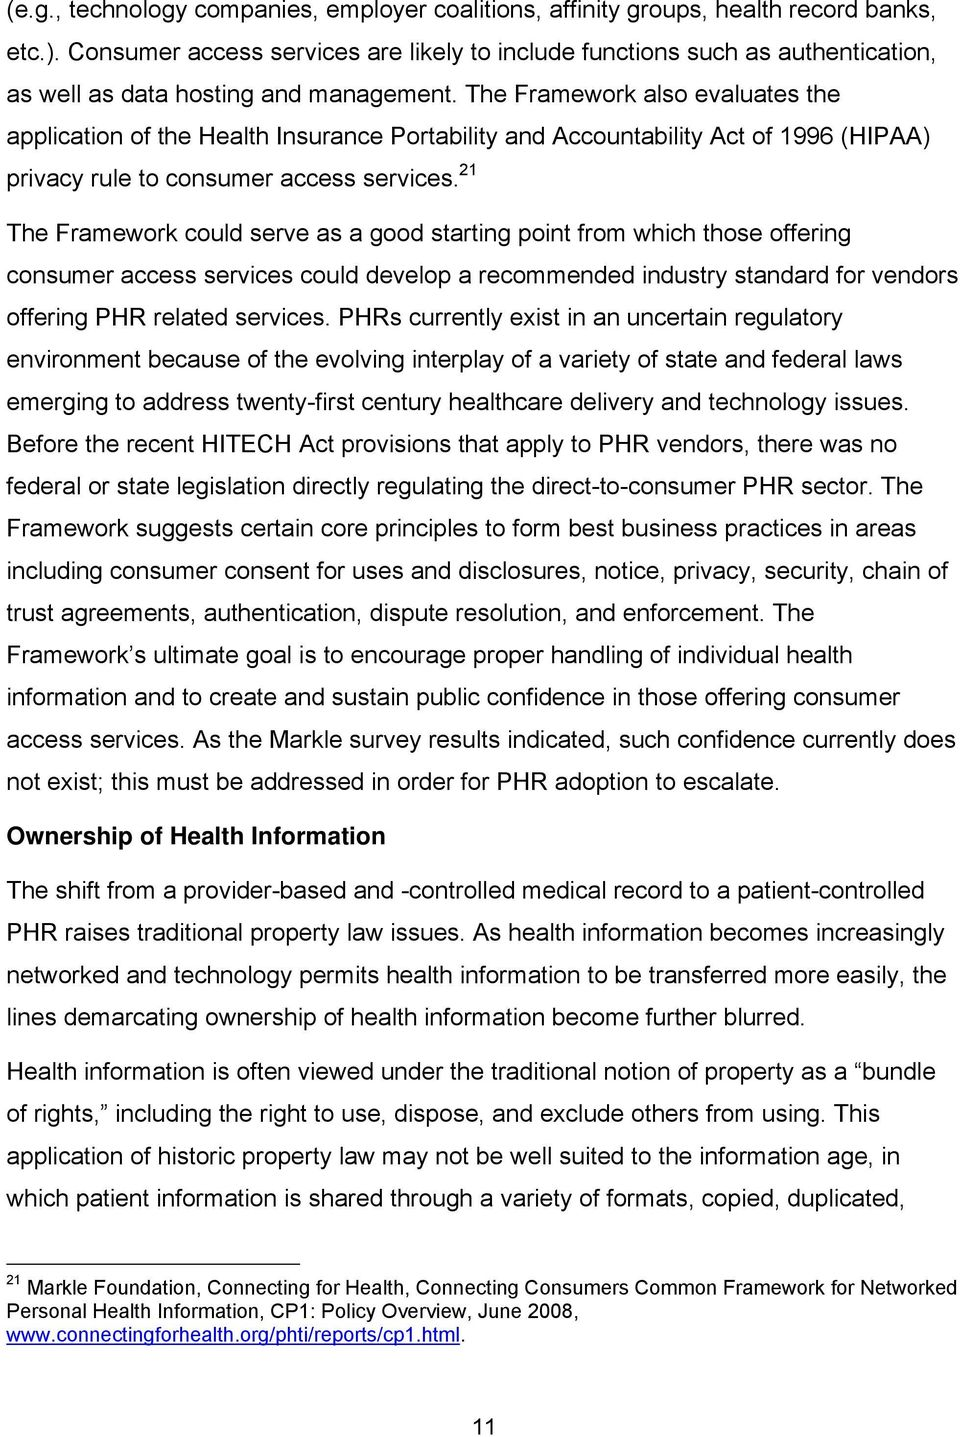 The Framework also evaluates the application of the Health Insurance Portability and Accountability Act of 1996 (HIPAA) privacy rule to consumer access services.